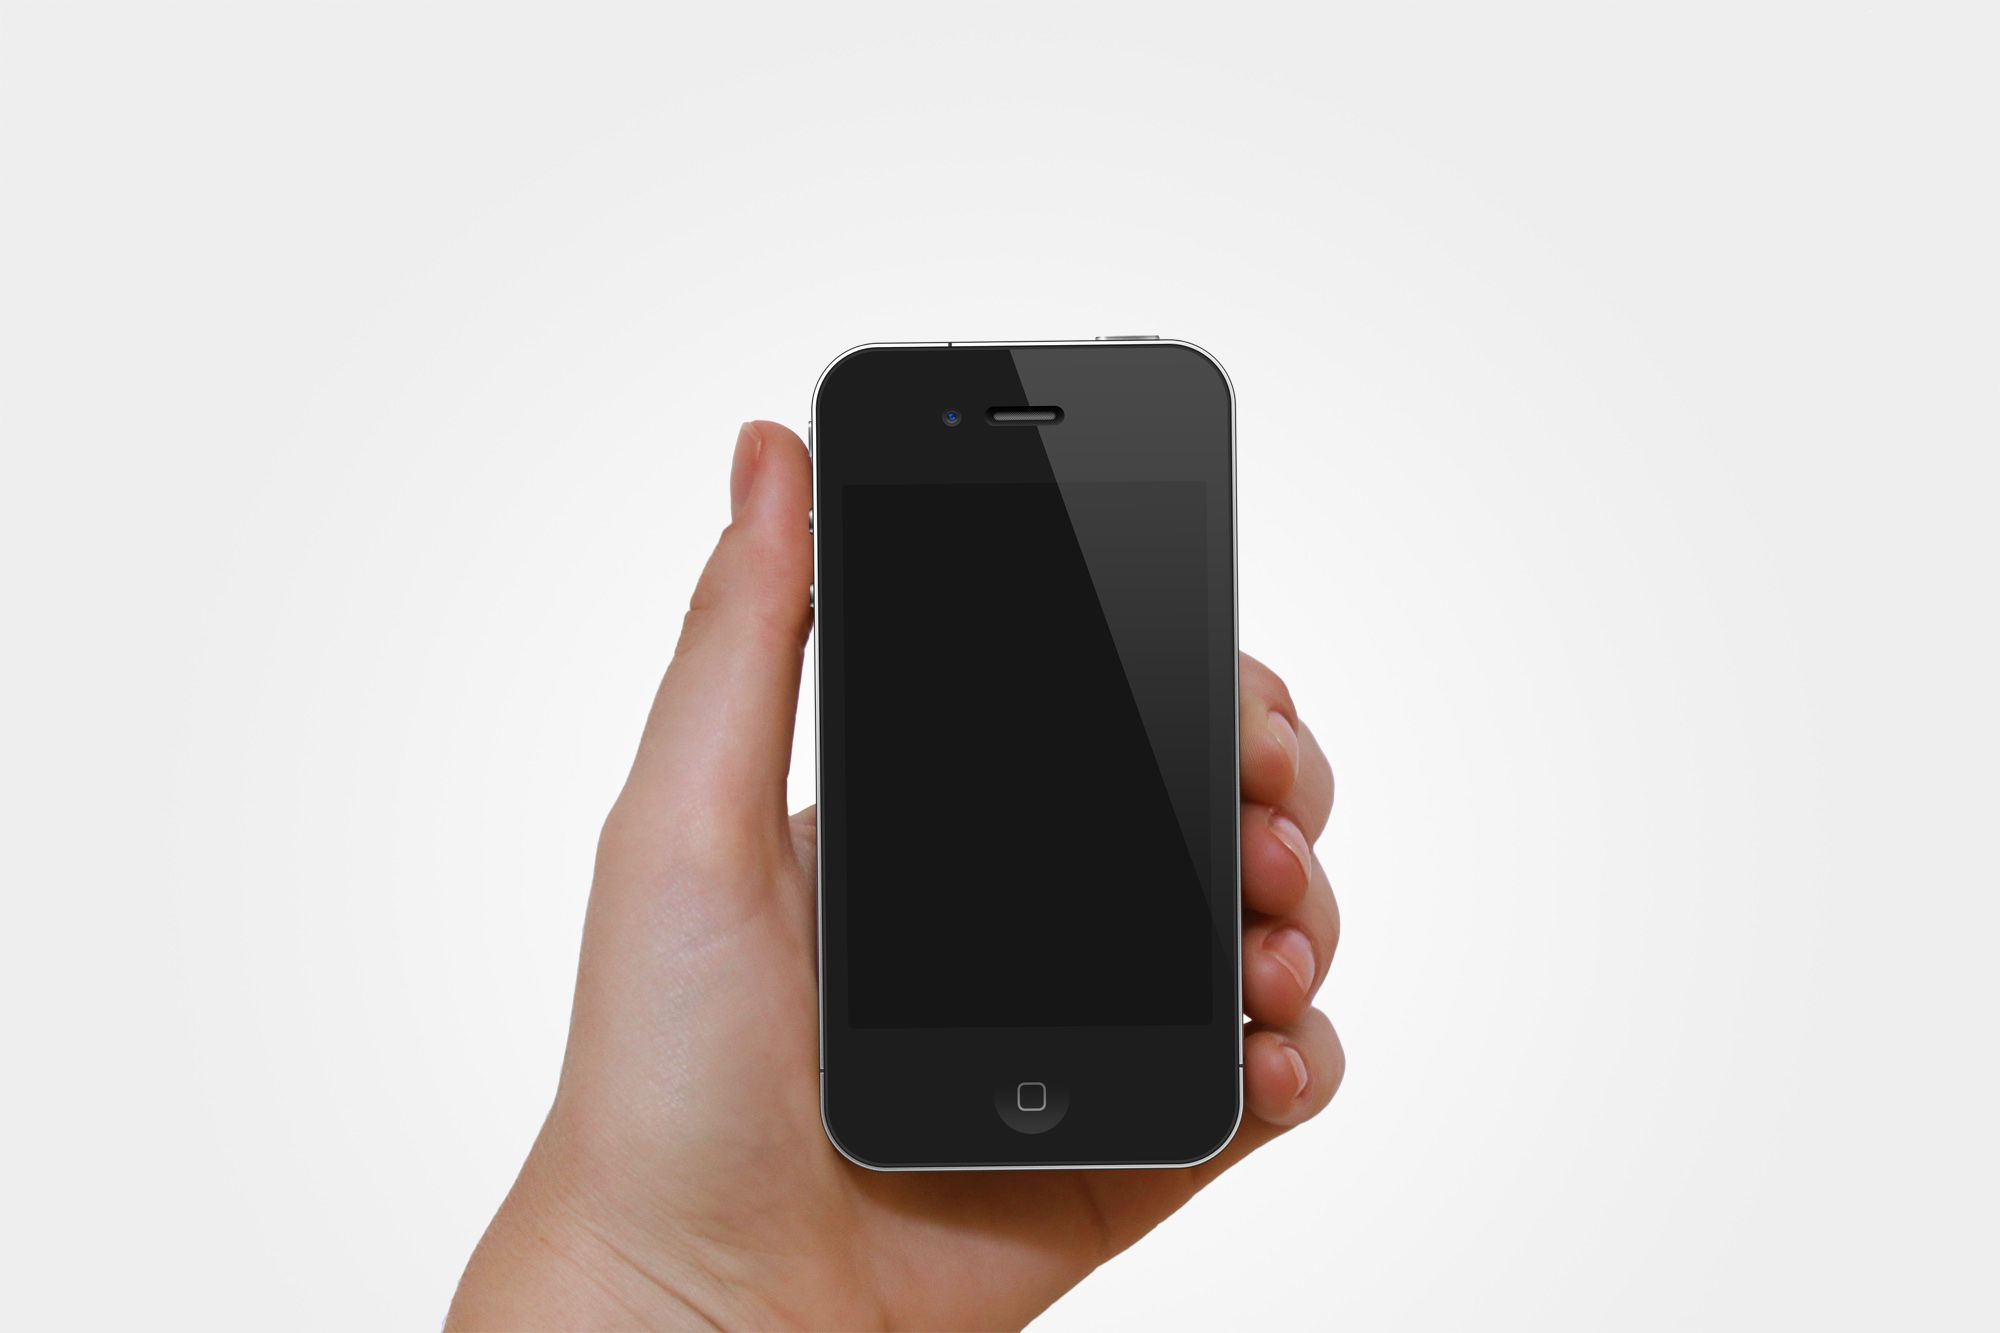 hand holding iphone iphone holding psd mockup mockups and icons 10757